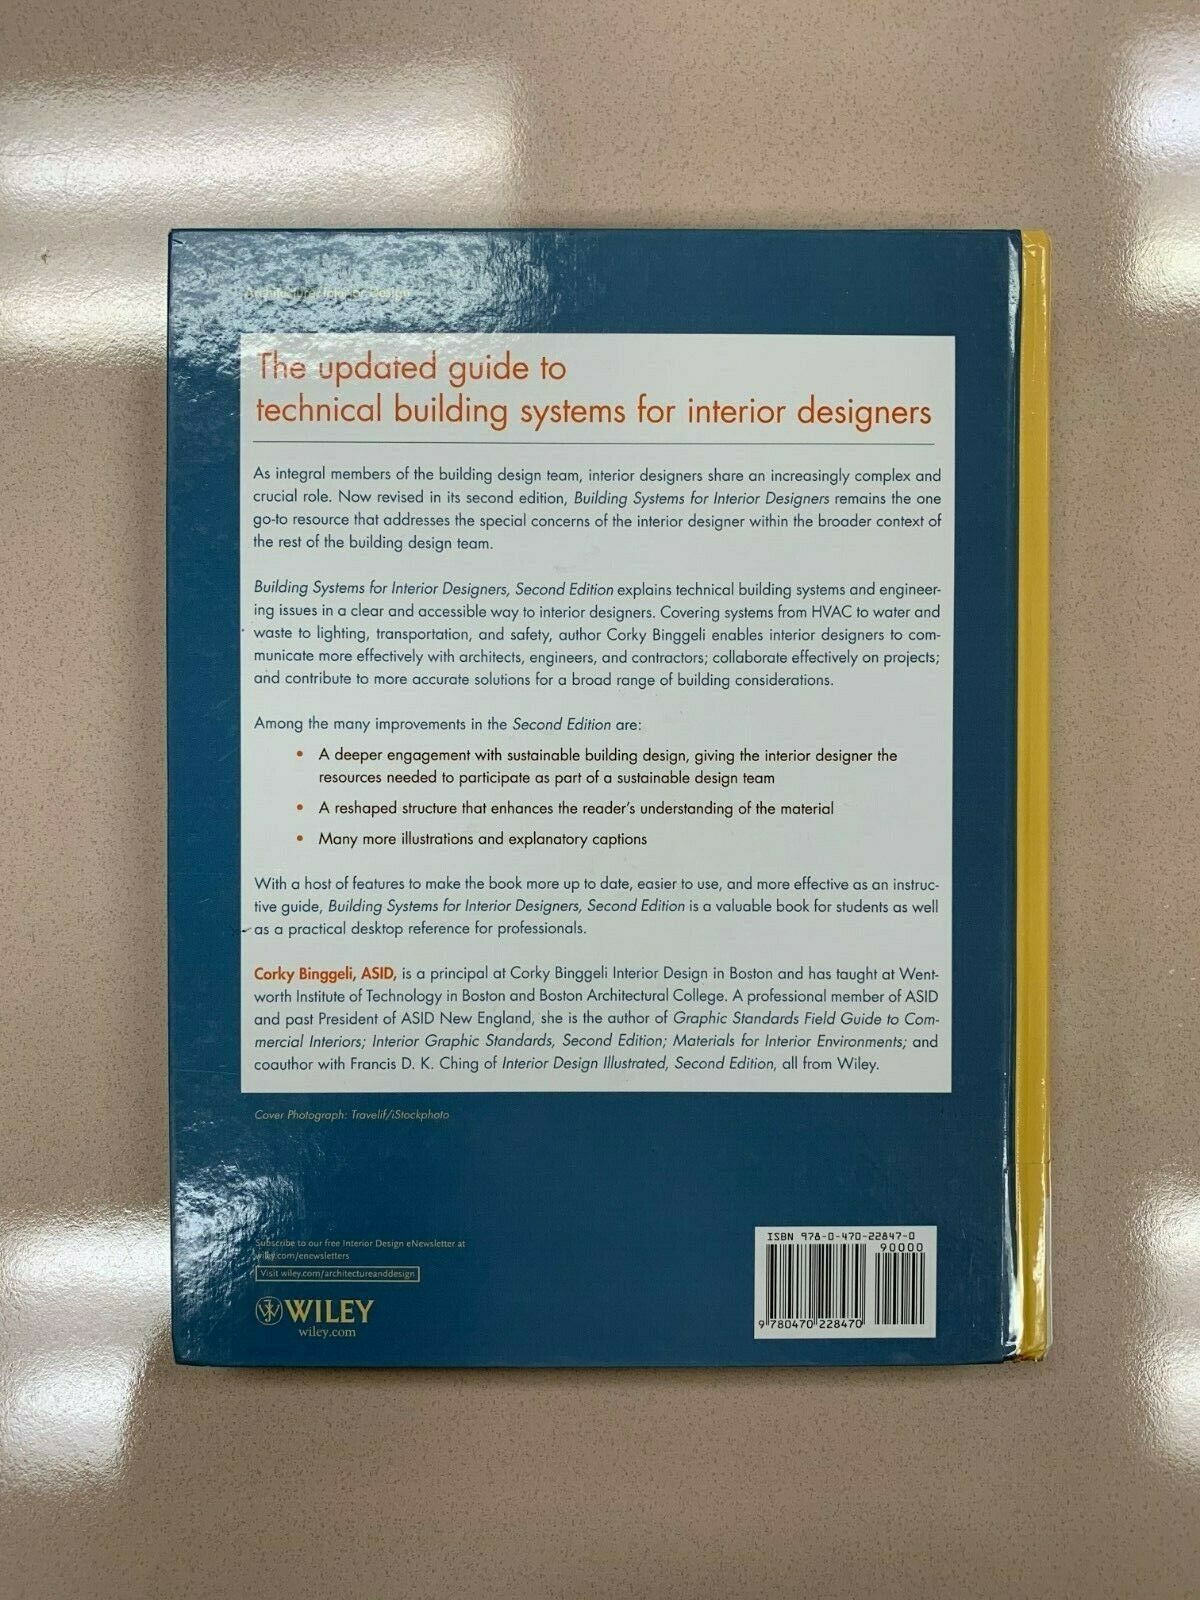 Building Systems For Interior Designers By Corky Binggeli 2009 Hardcover For Sale Online Ebay